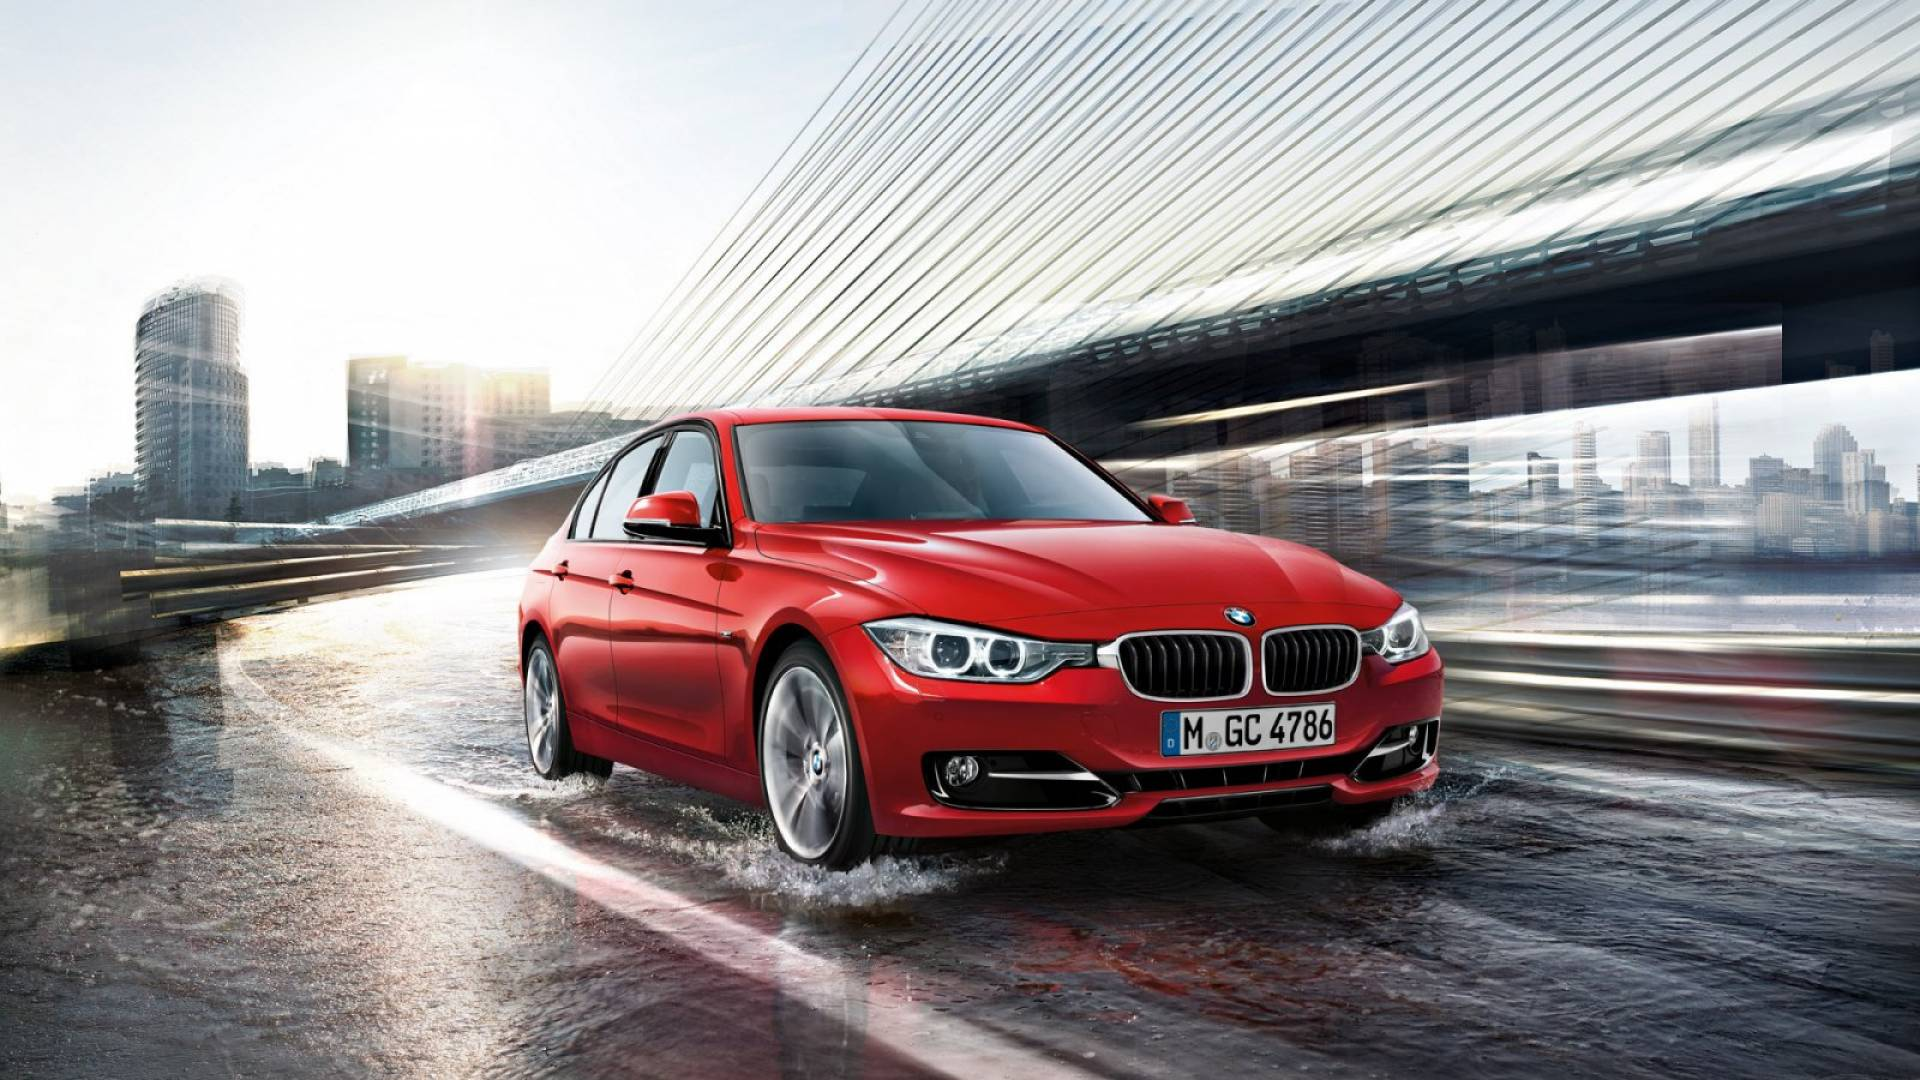 Bmw 3 Series F30 1920x1080 Hd Fondoswikicom